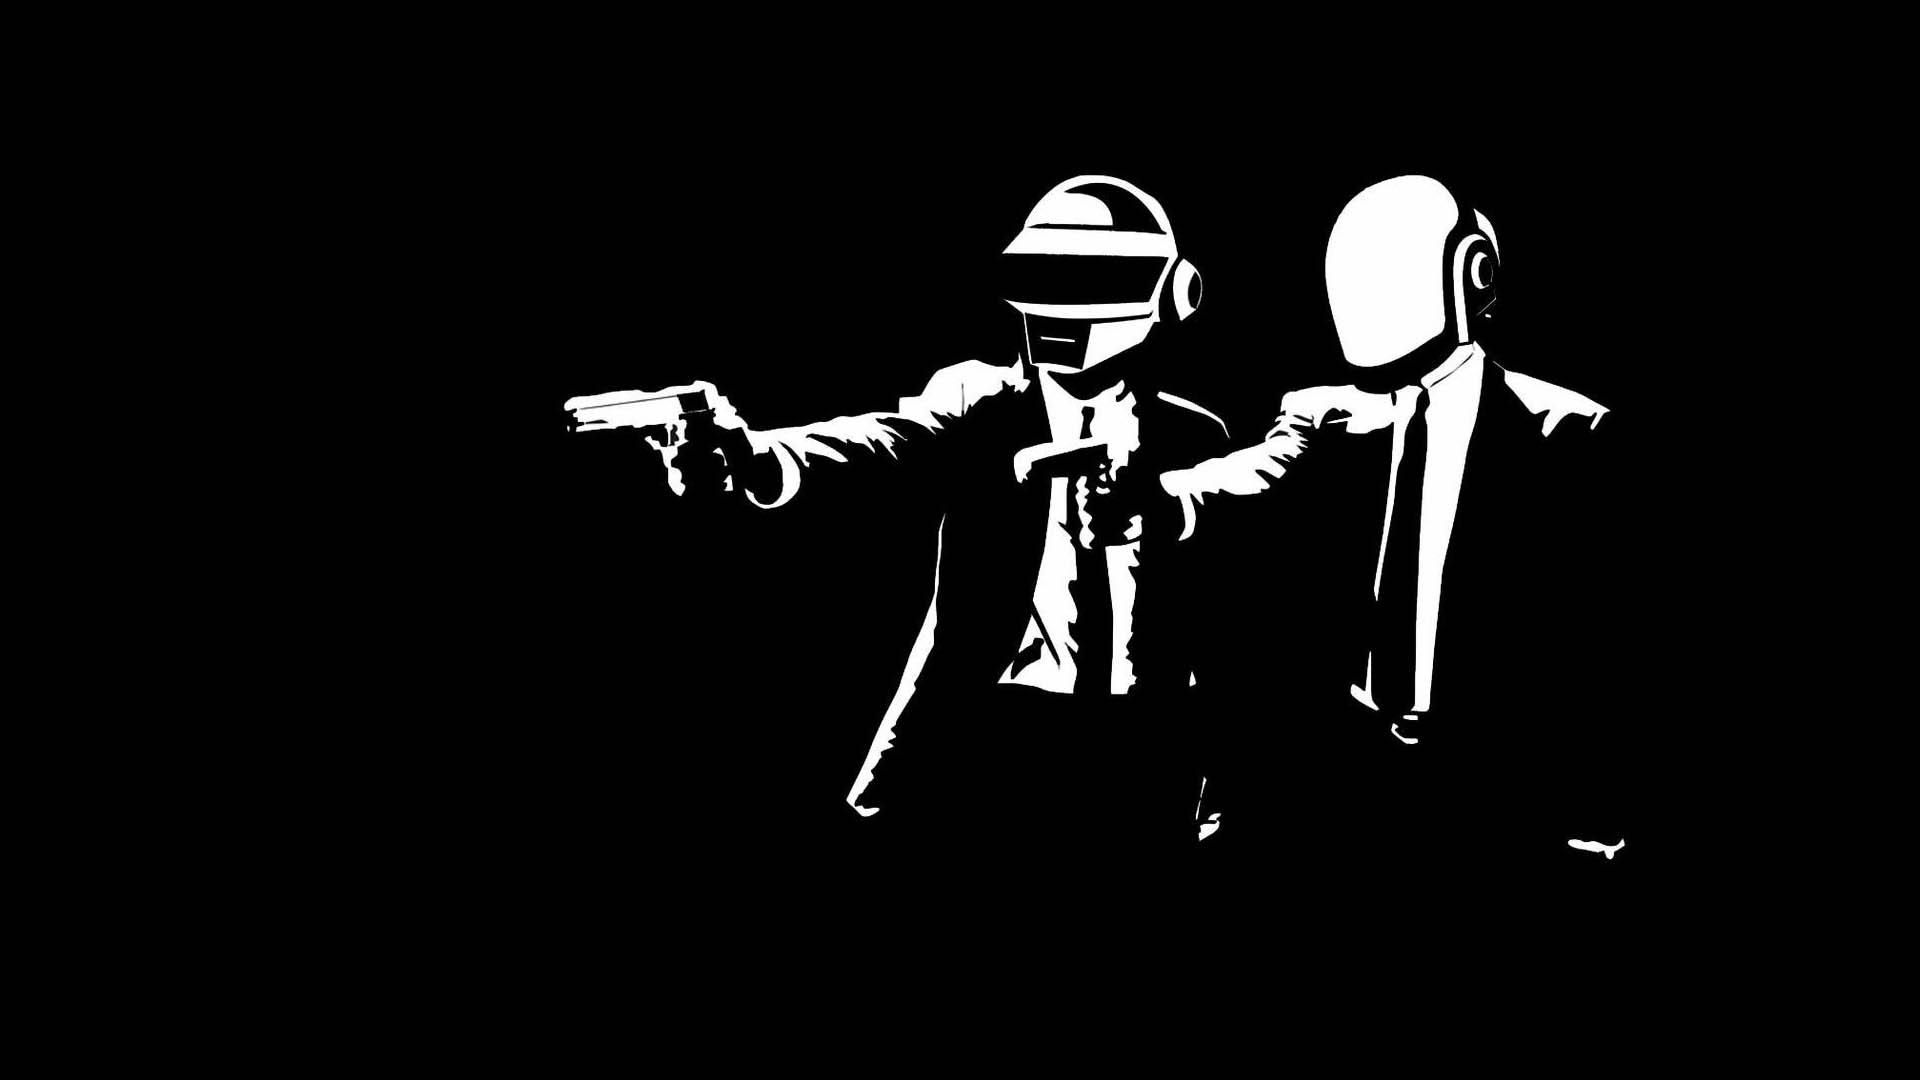 Daft Punk backdrop wallpaper